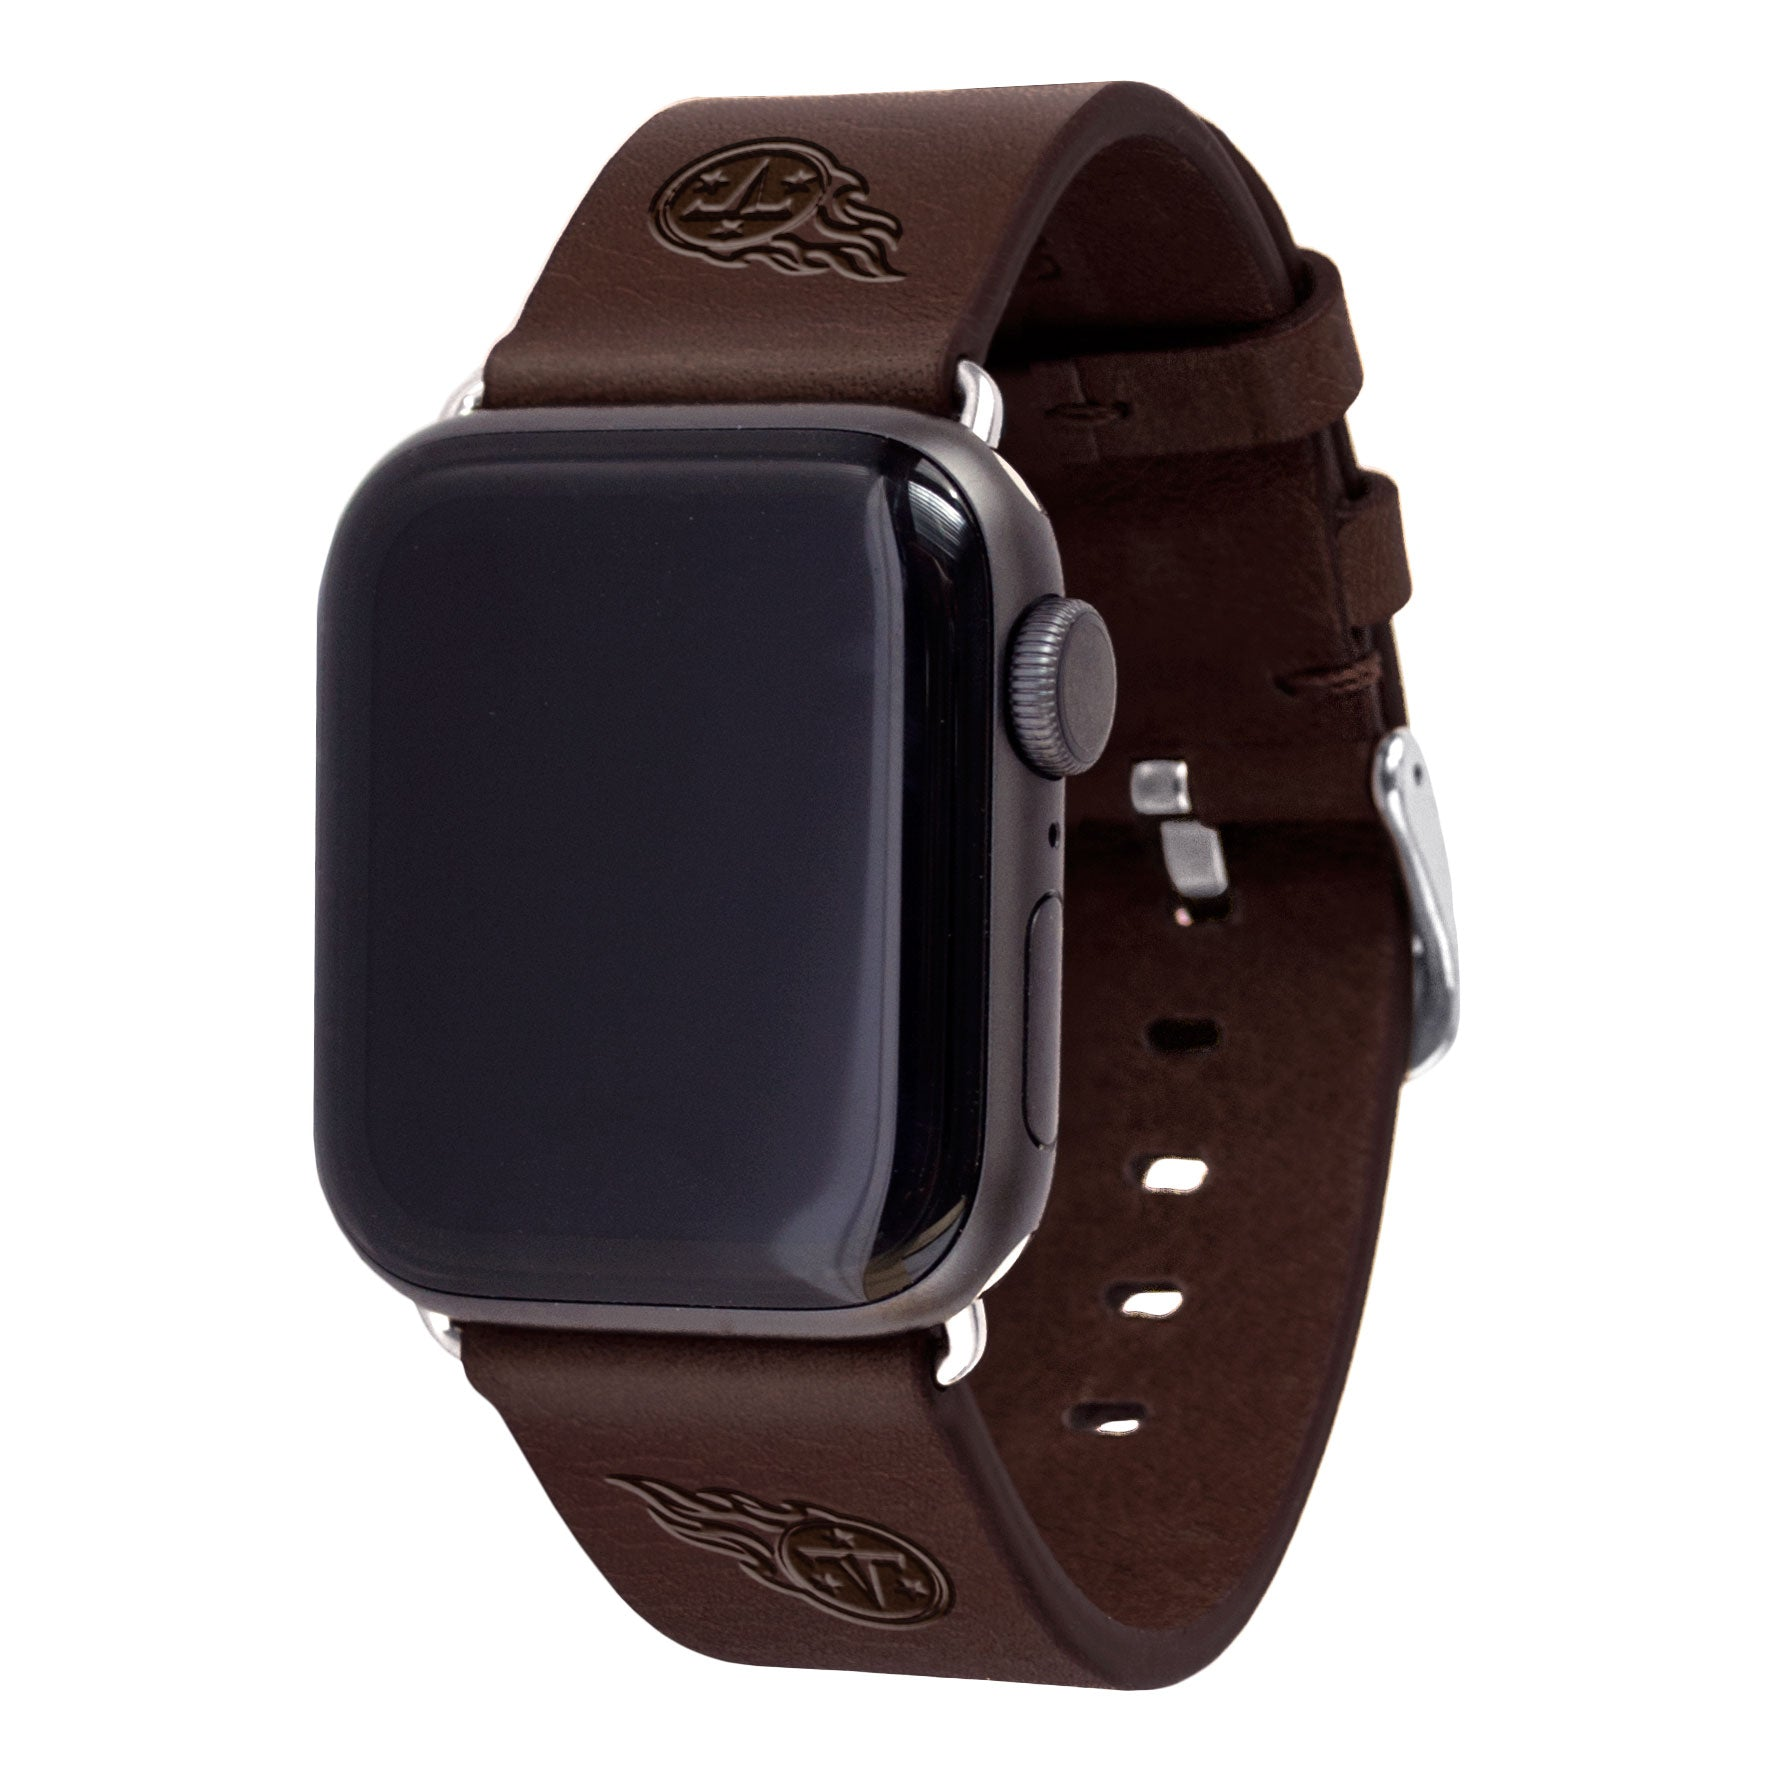 Tennessee Titans Leather Apple Watch Band - AffinityBands